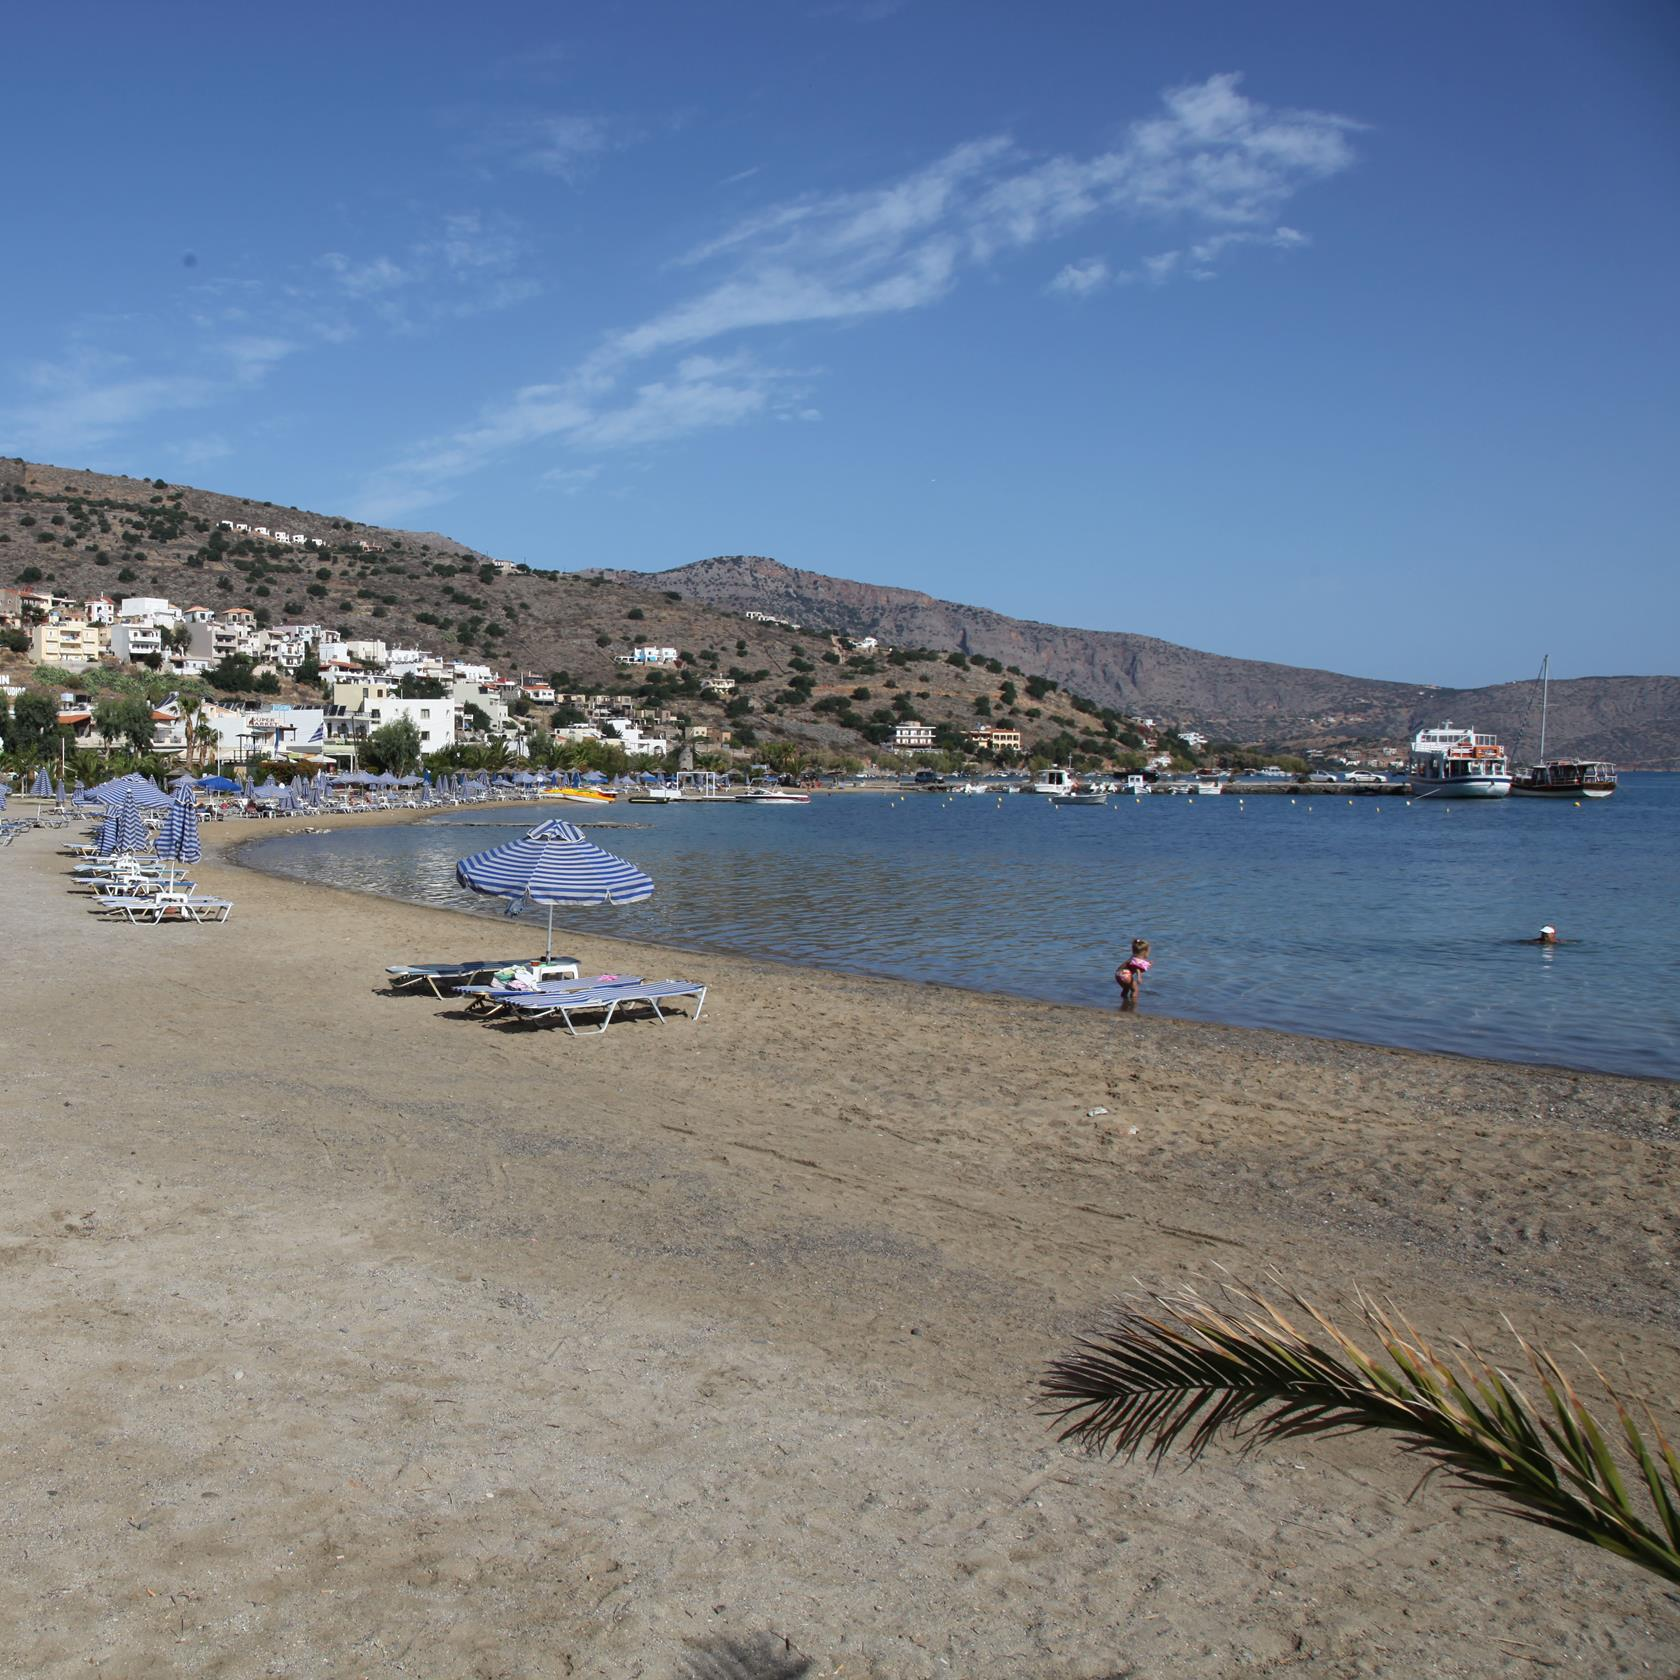 Blue Flagged beach of Elounda